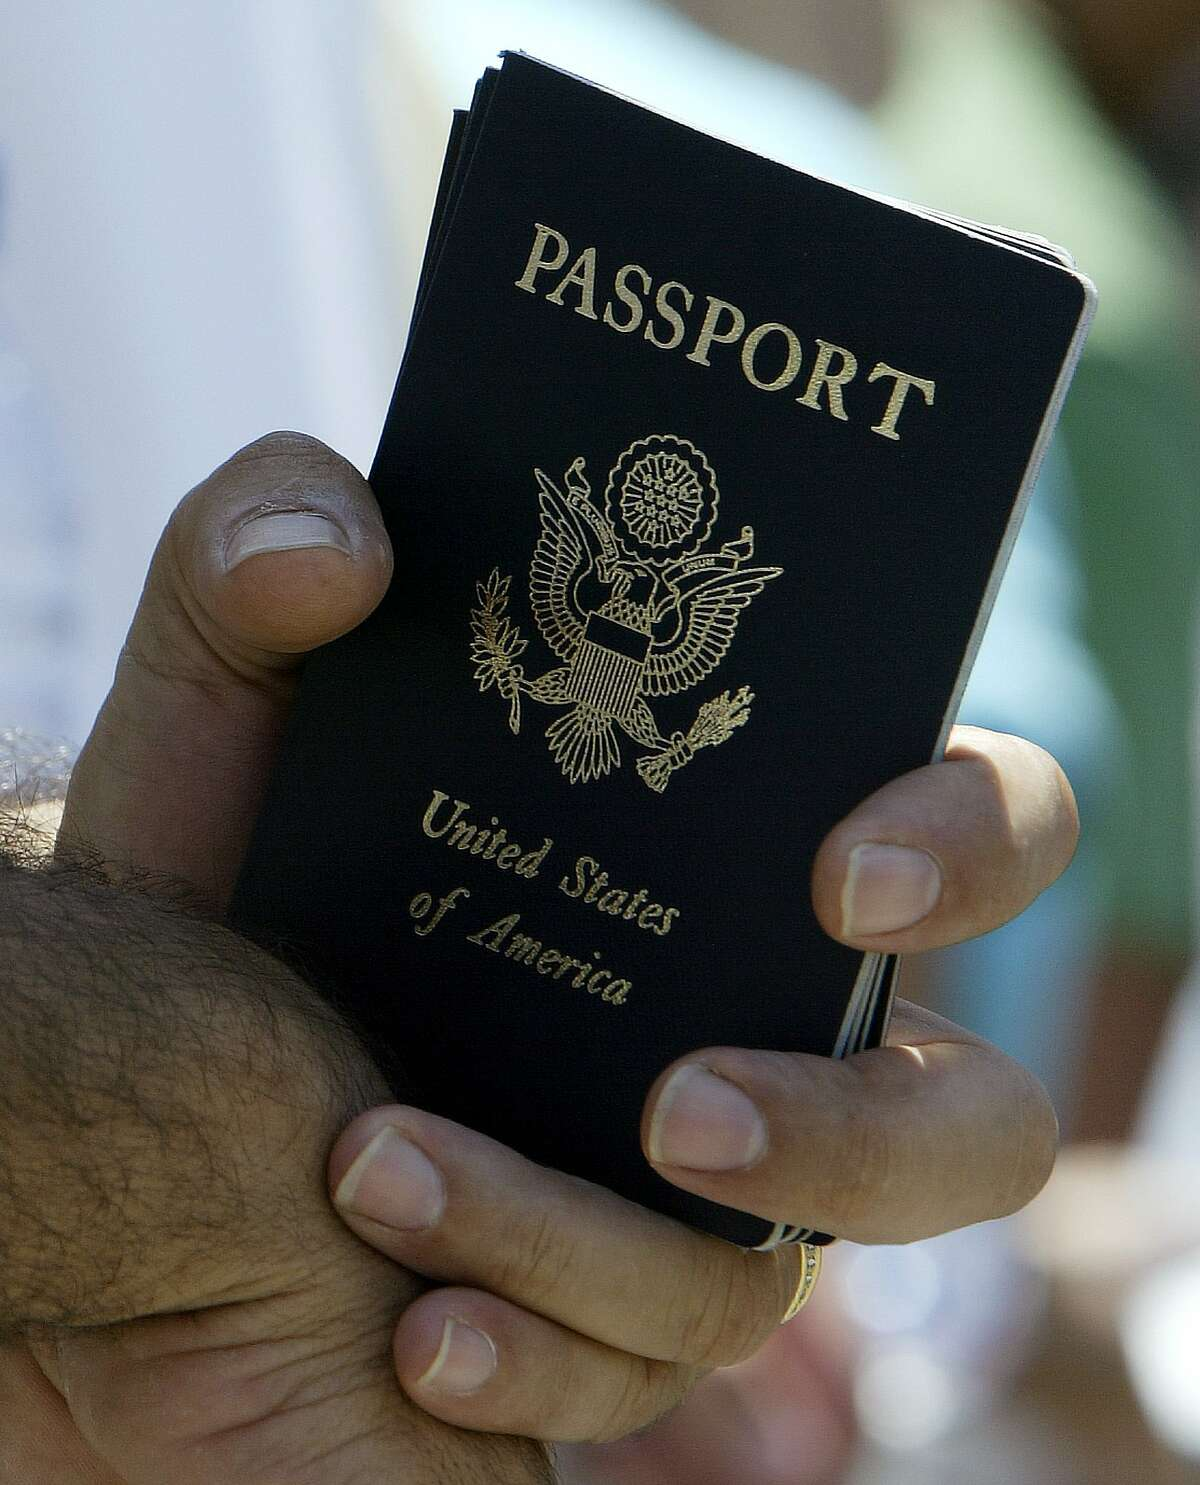 An evacuee from Lebanon holds his U.S. passport, as he waits in a line prior to his departure to the airport, at the international fairground of Nicosia, Cyprus, Thursday, July 20, 2006. Some 900 U.S. citizens, many of them of Lebanese origin, arrived on the cruise liner Orient Queen early Thursday, completing the first trip in a massive operation to evacuate thousands of U.S. citizens from wartorn Lebanon. (AP Photo/Thanassis Stavrakis)